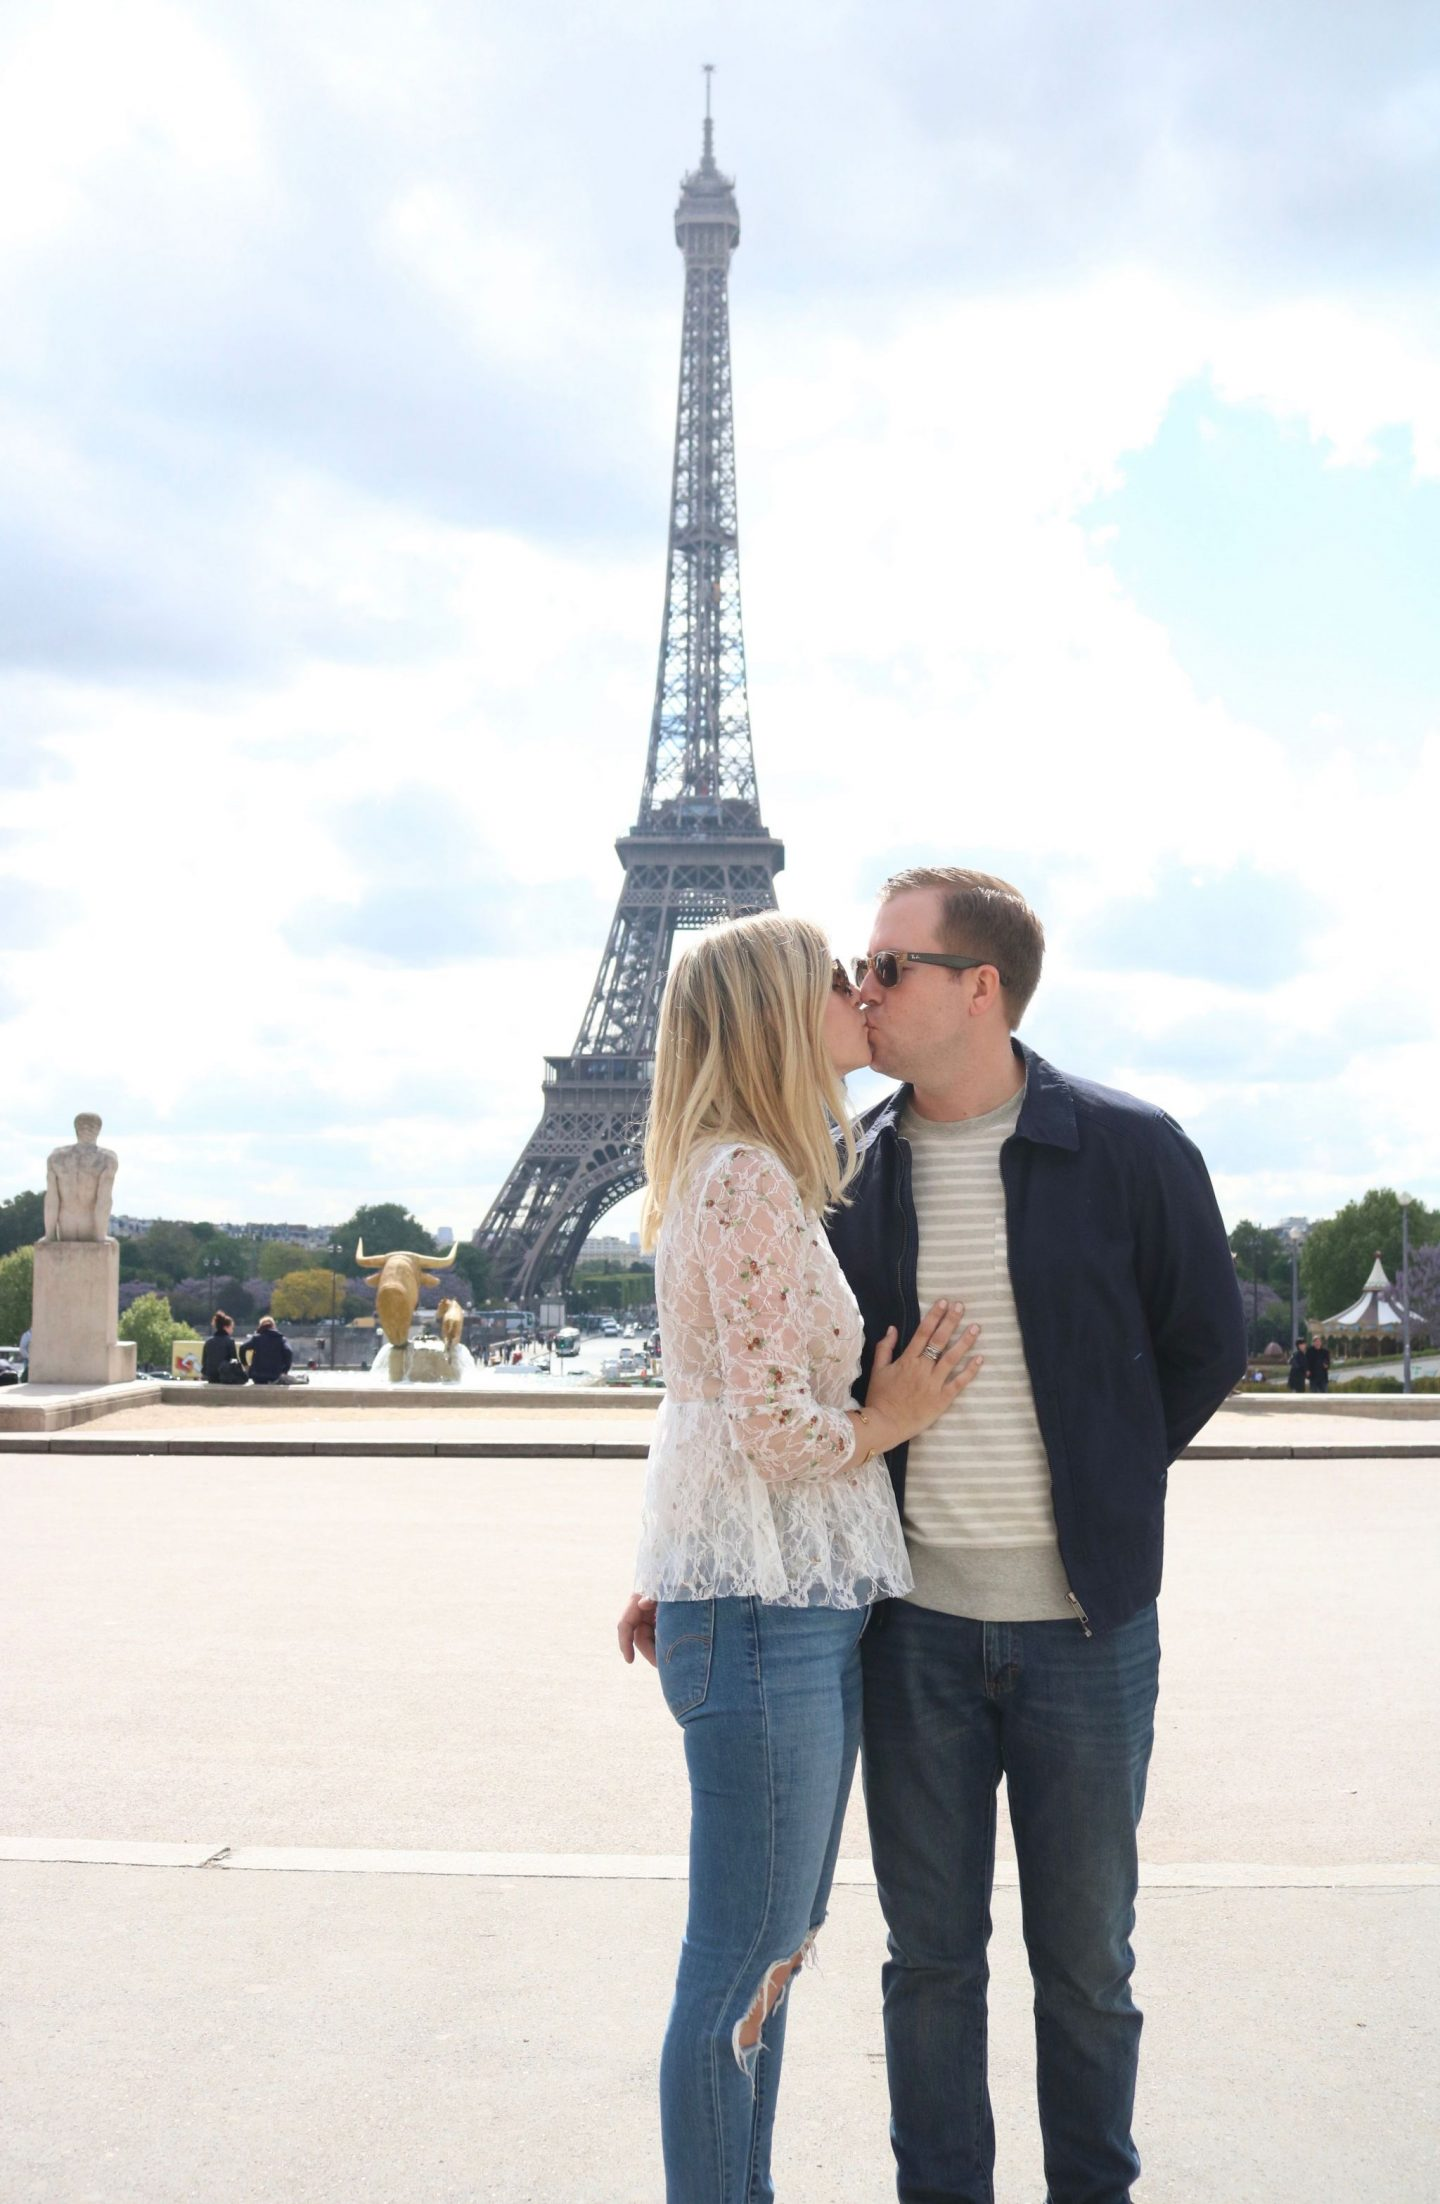 couple in paris, eiffel tower, distressed denim